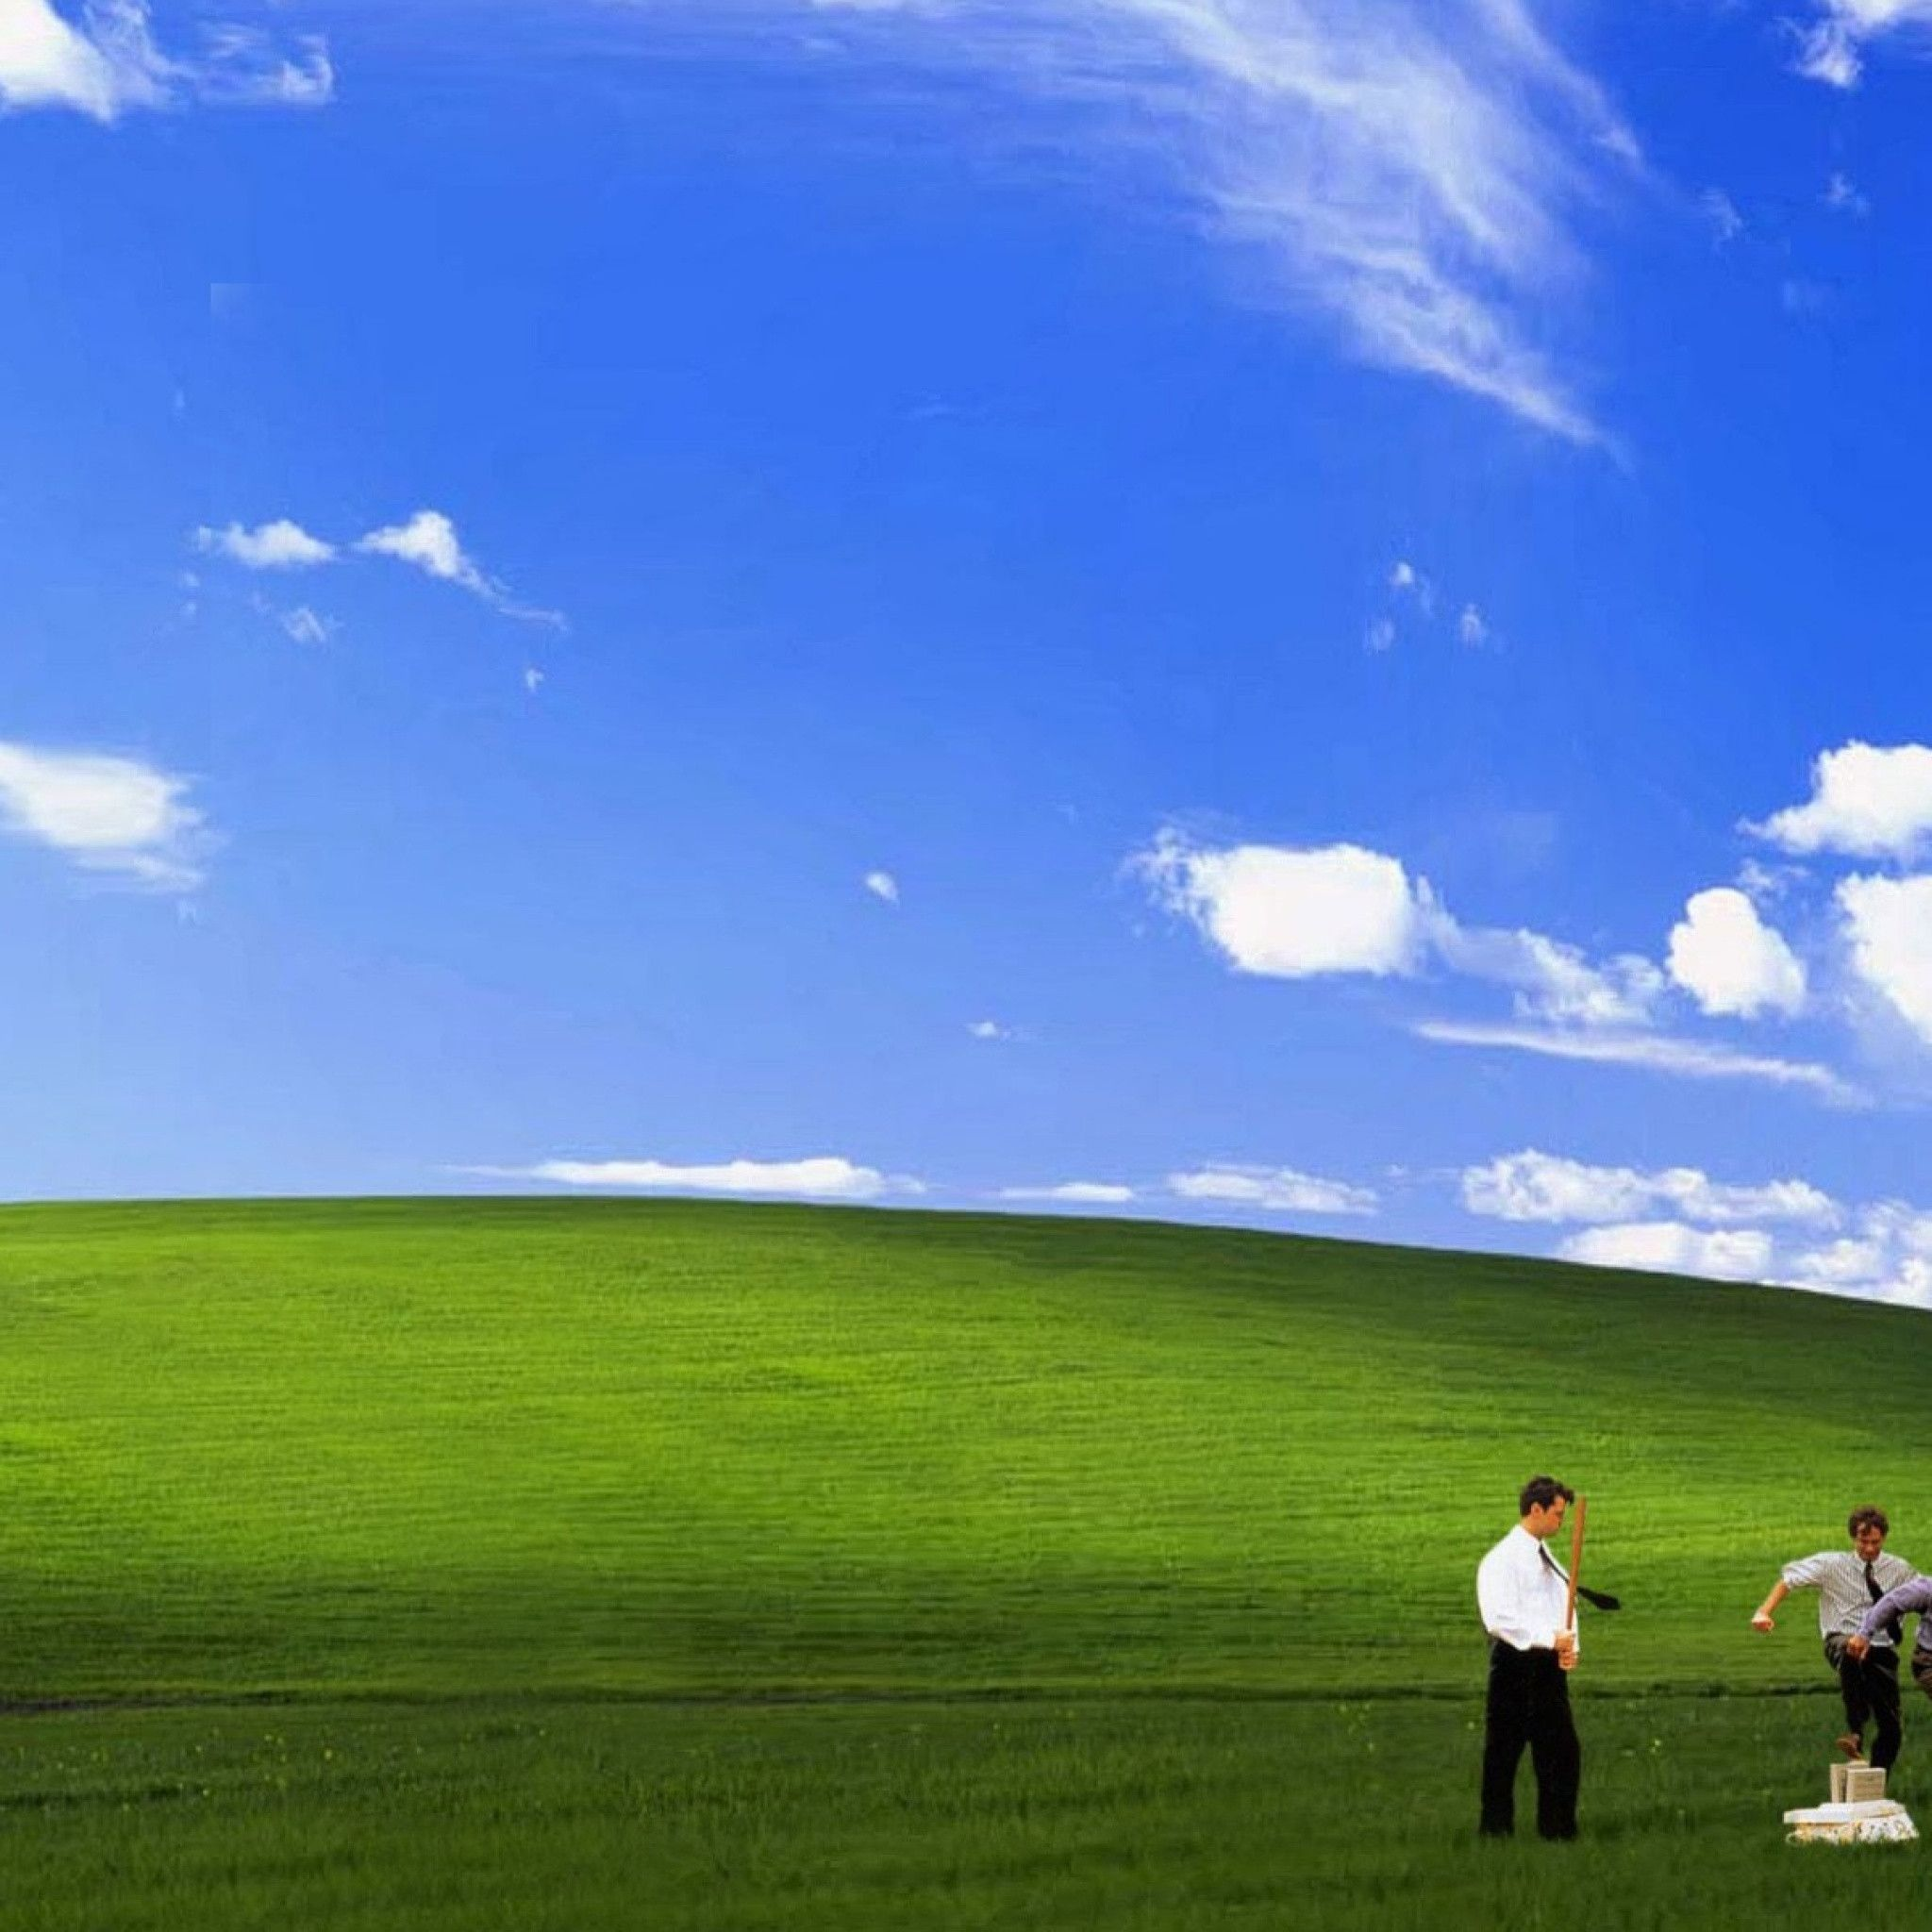 Windows Xp Wallpapers Bliss Wallpaper Cave Amazing Nature Photos View Wallpaper Beautiful Wallpapers